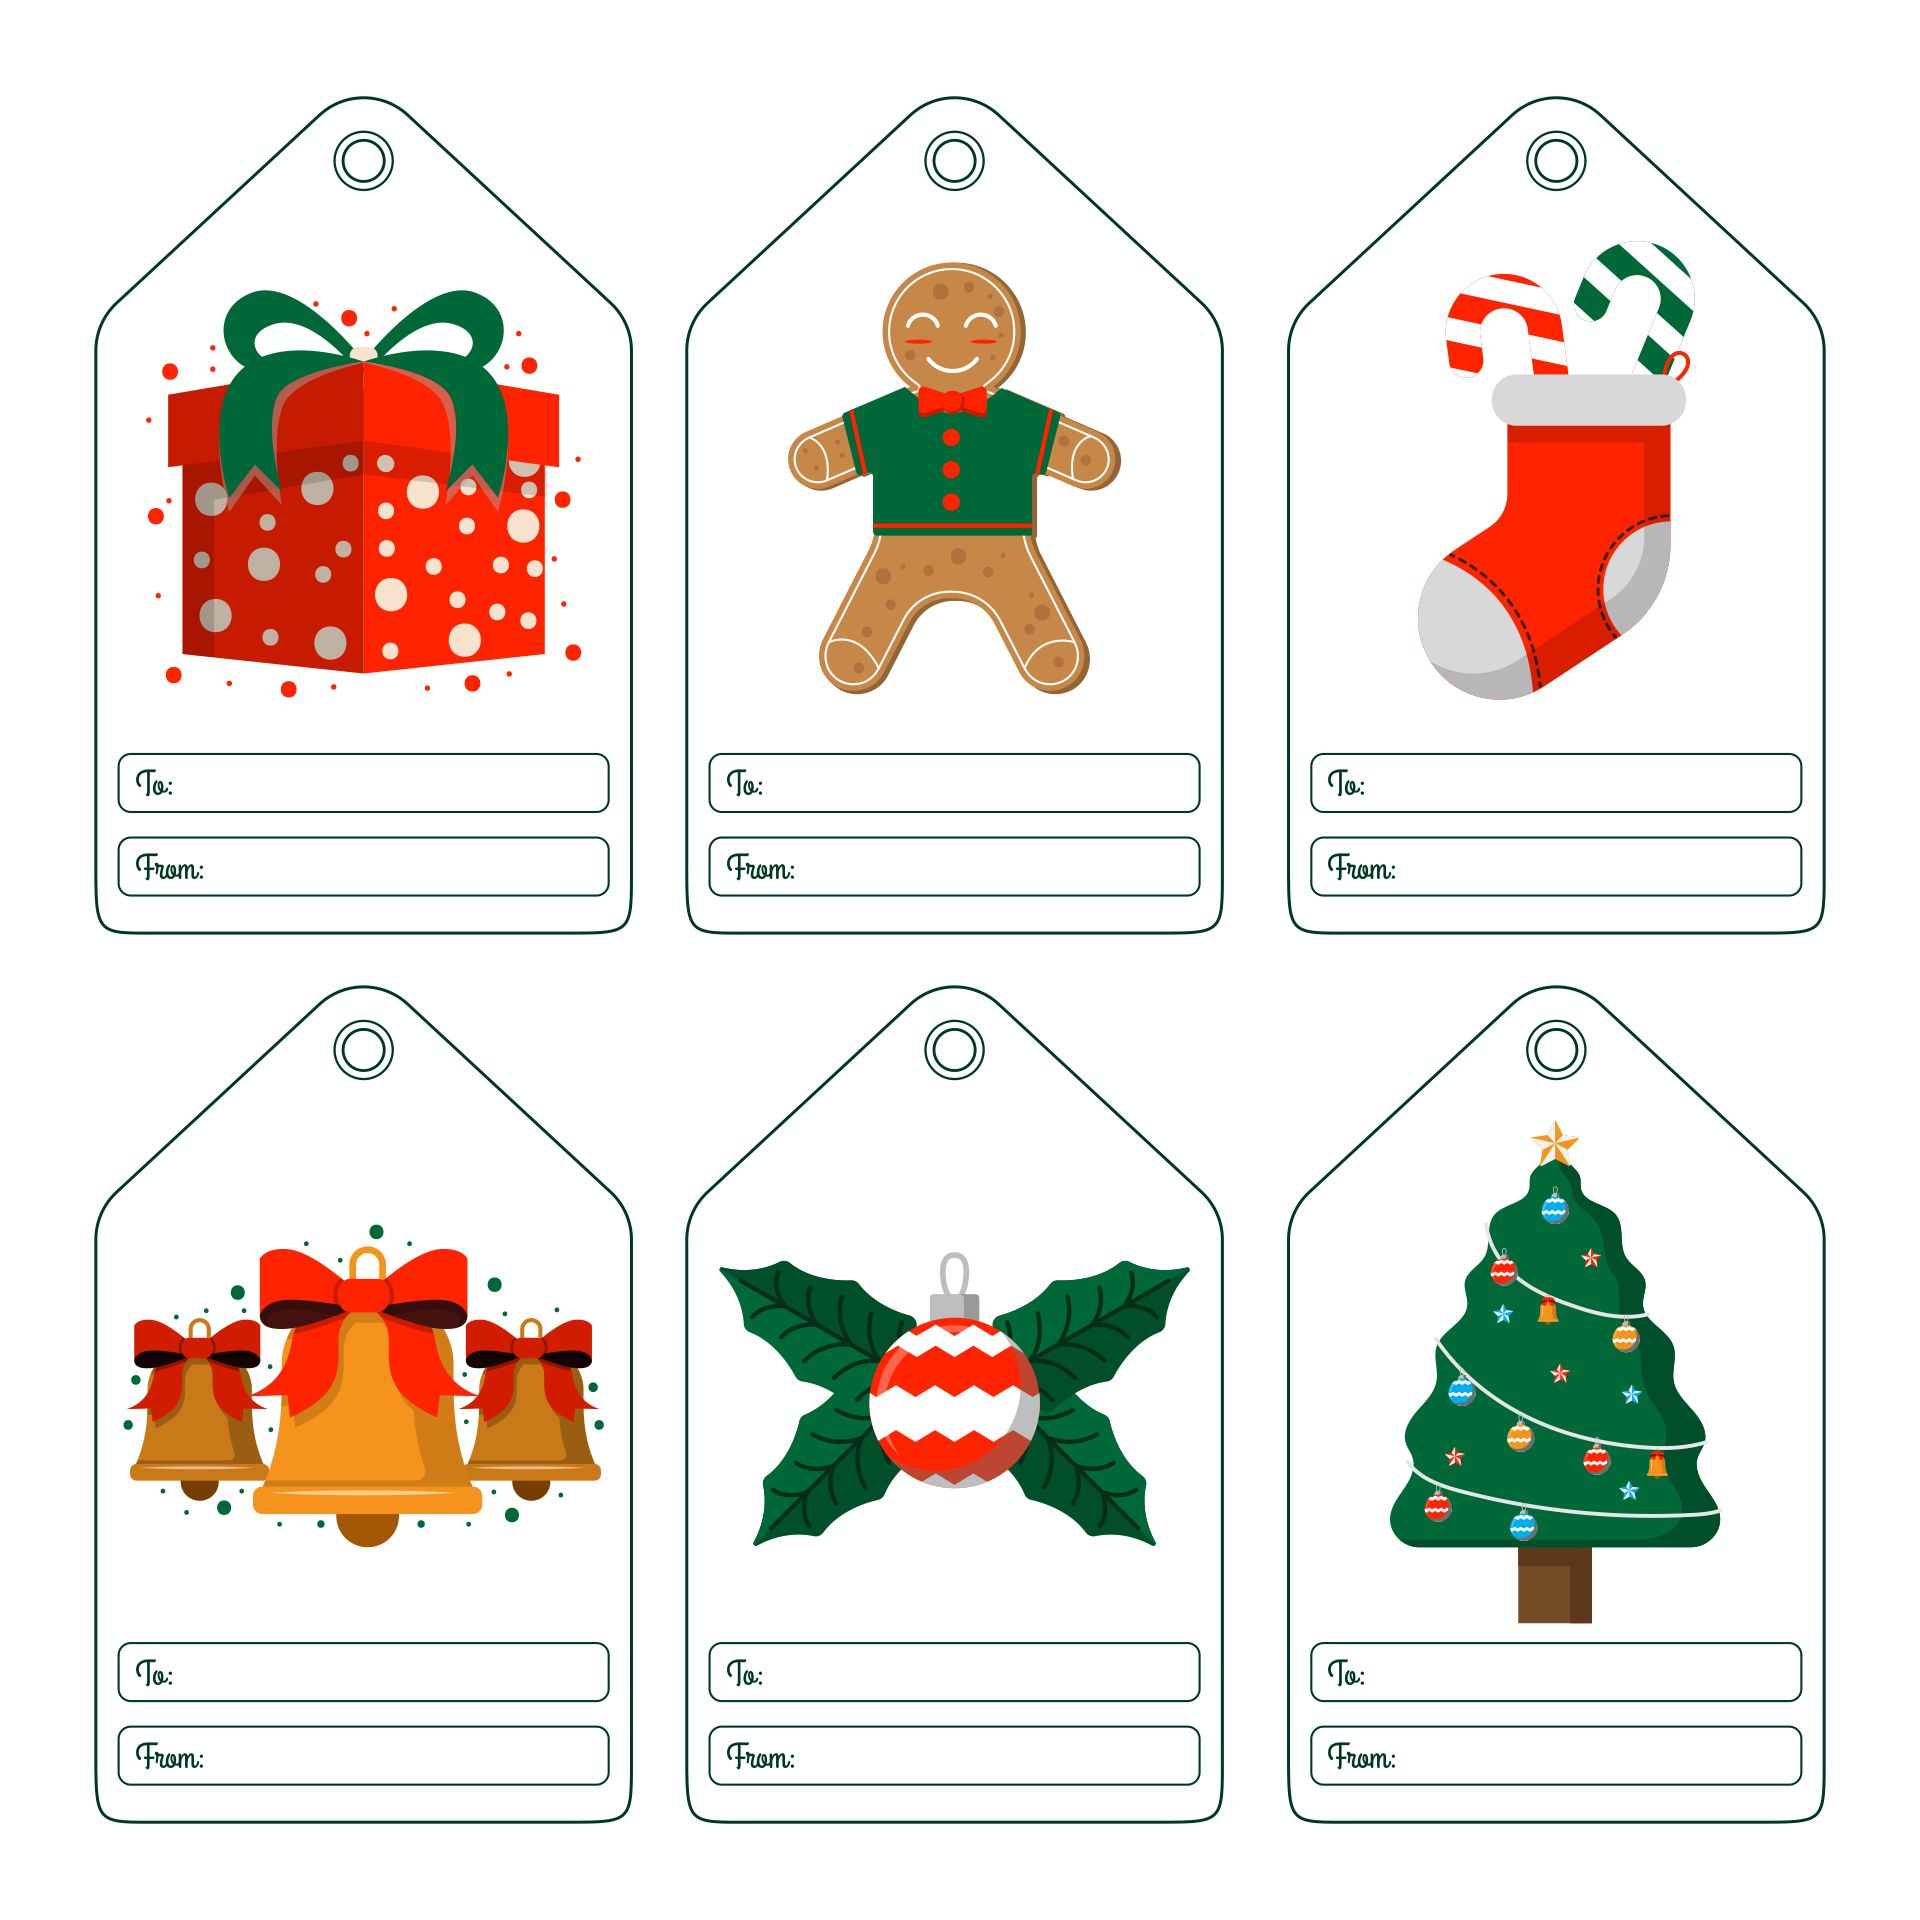 7 Best Printable Christmas Gift Tags Personalized Printablee Com